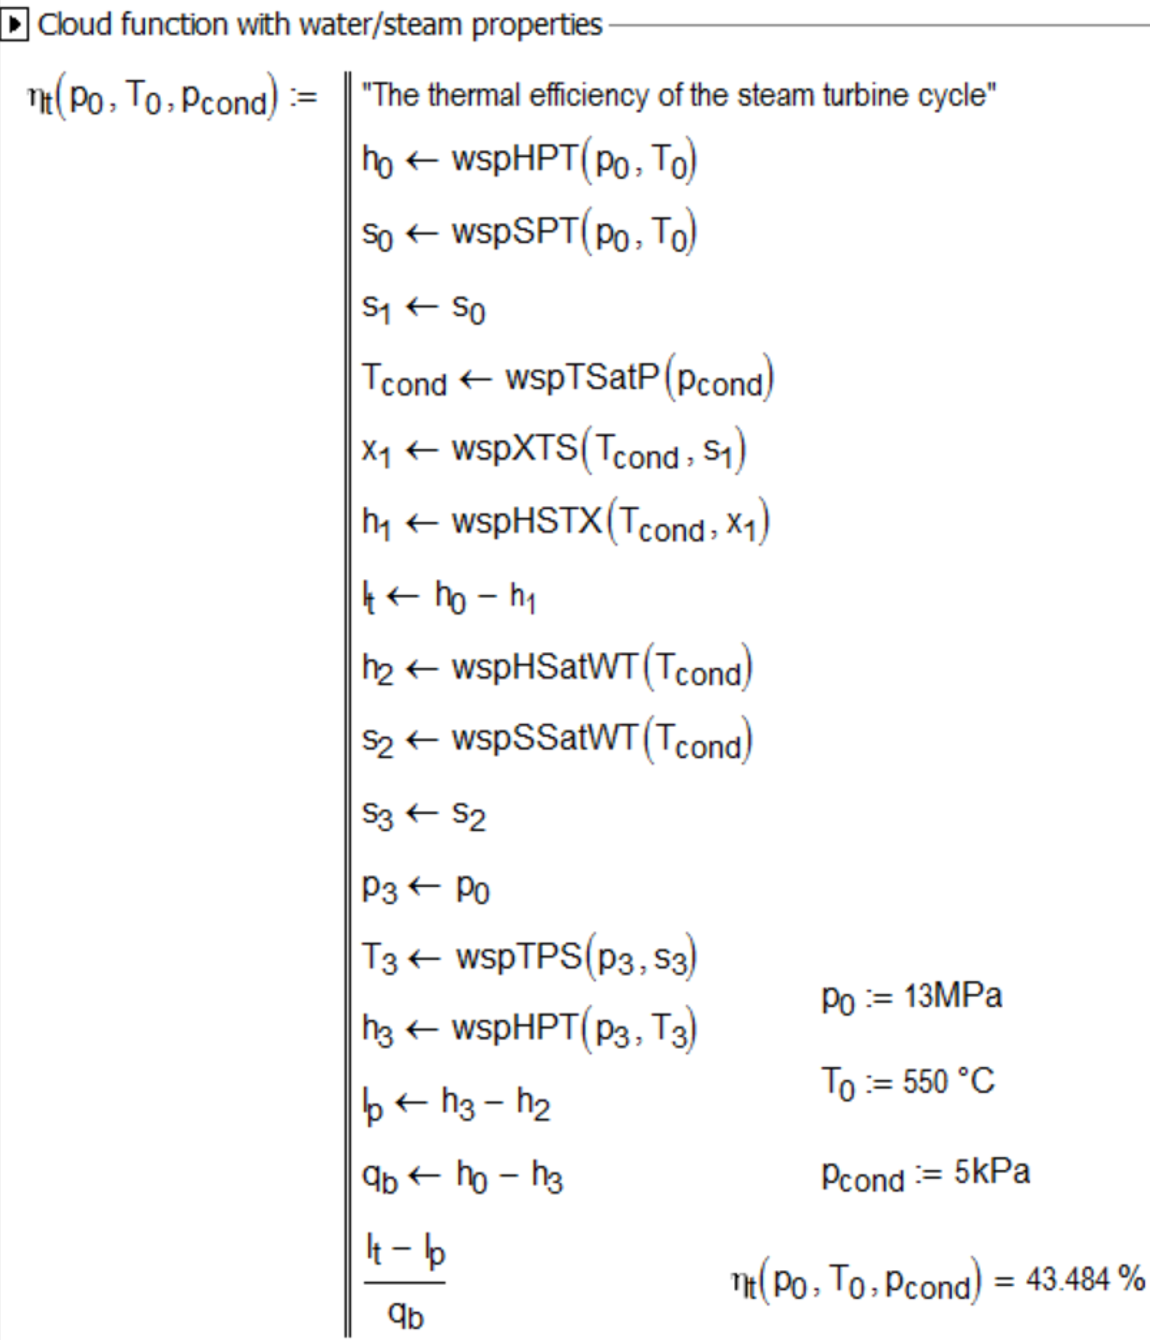 Fig-4-6.png